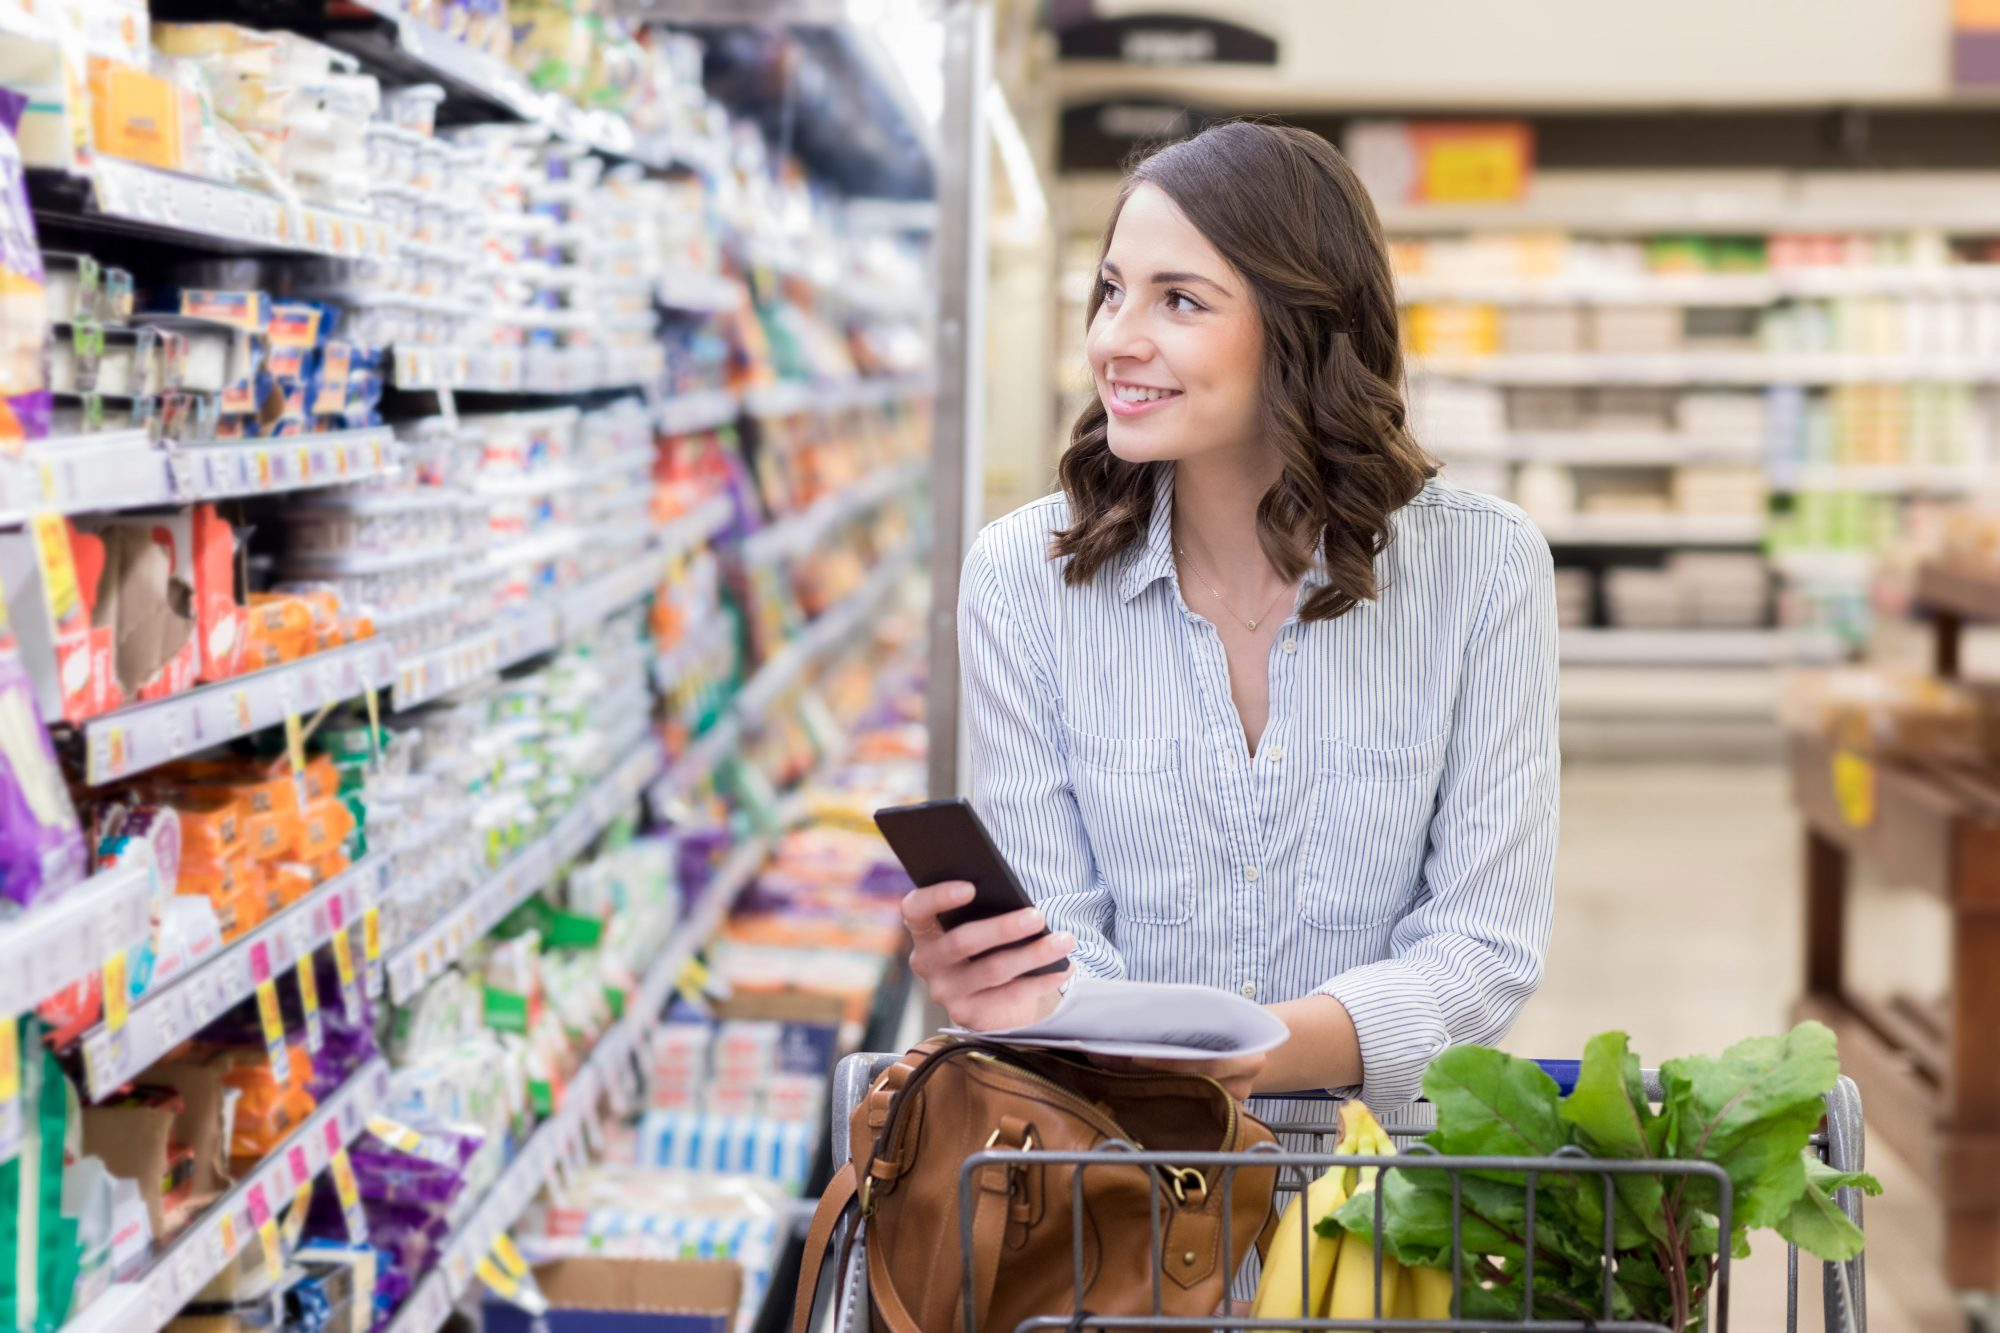 Woman Grocery Shopping with Phone Out